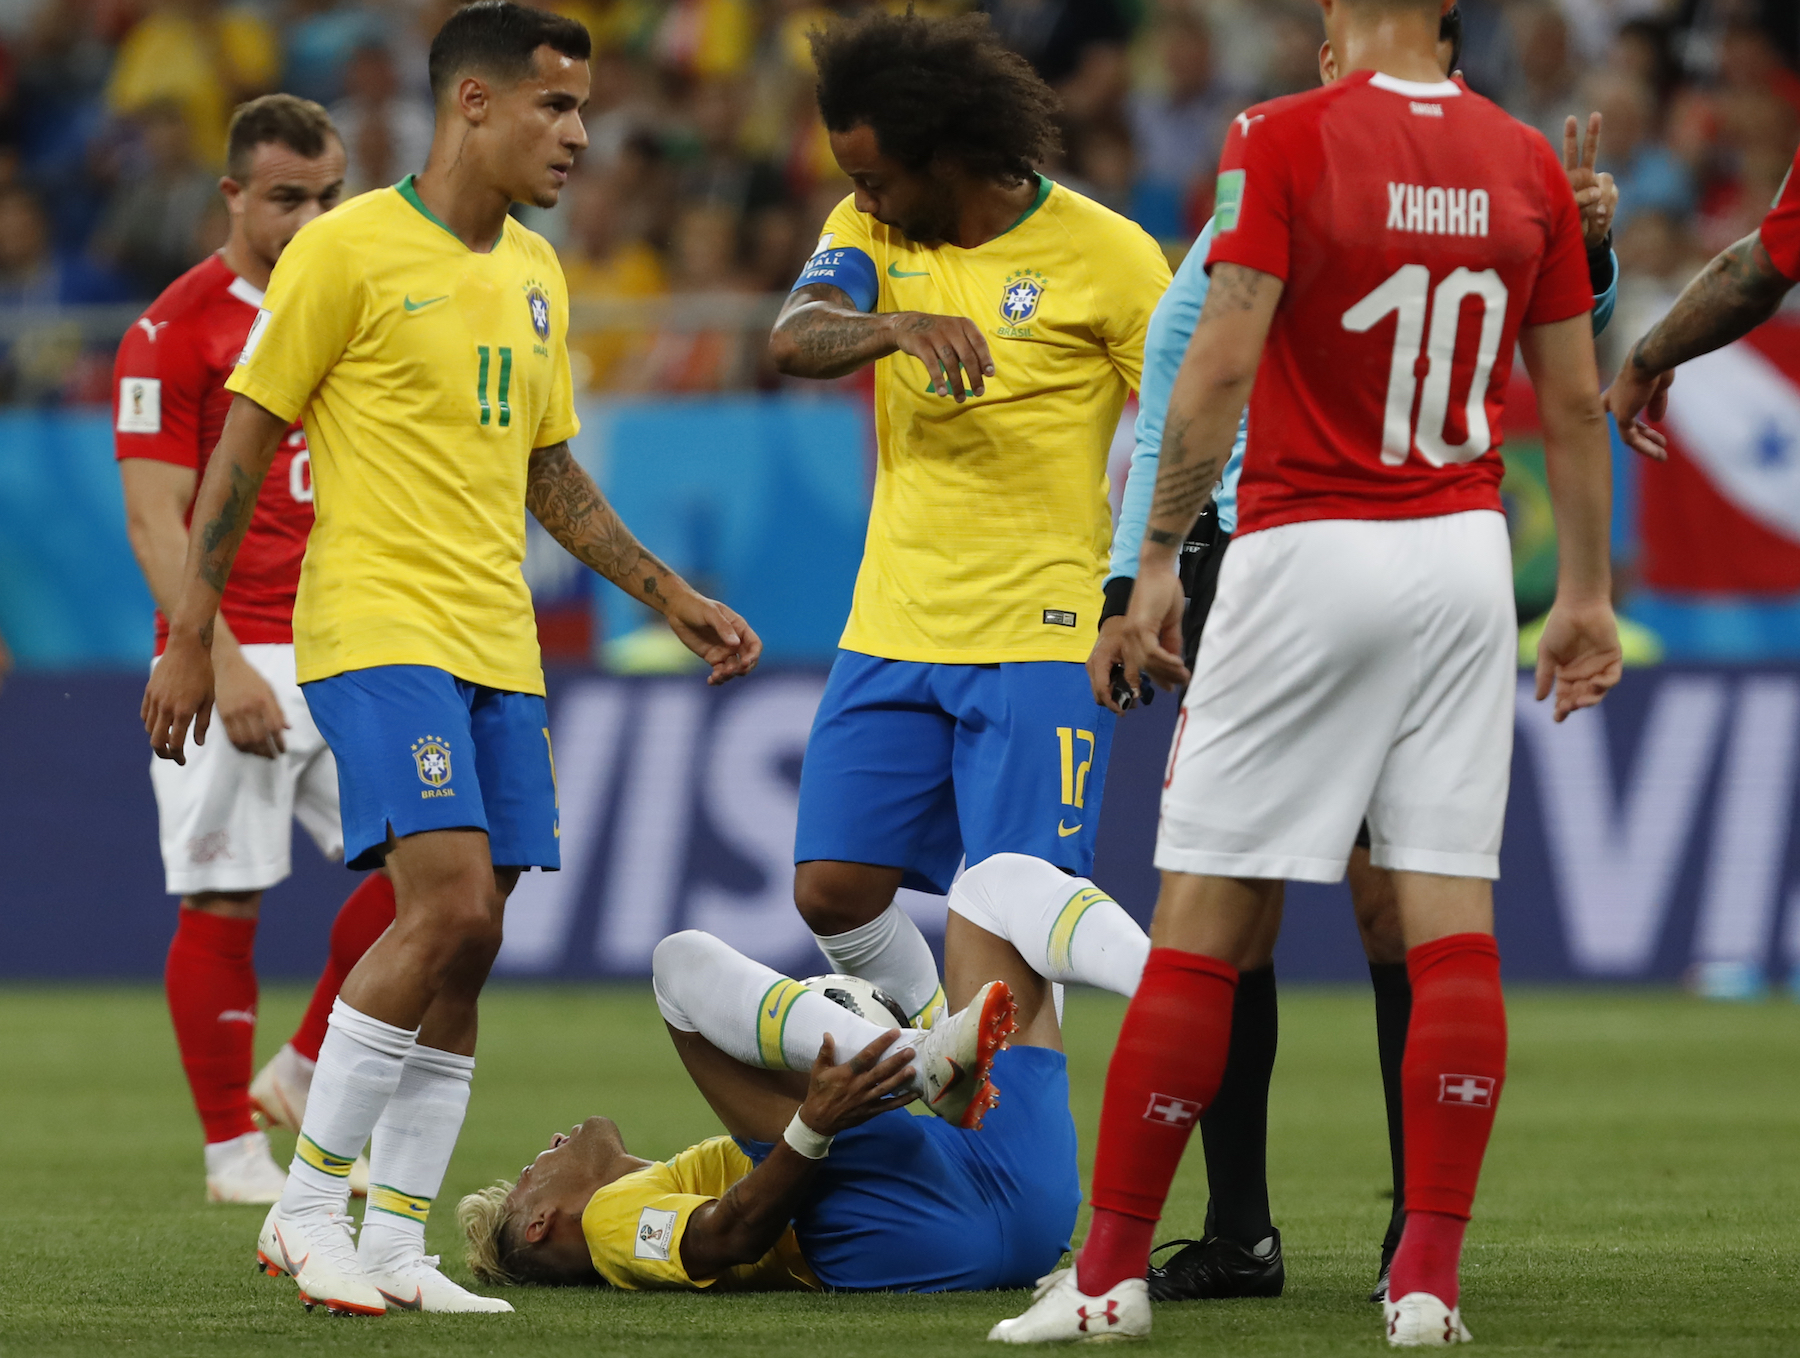 <div class='meta'><div class='origin-logo' data-origin='AP'></div><span class='caption-text' data-credit='AP Photo/Darko Vojinovic'>Brazil's Neymar lies on the ground during the group E match between Brazil and Switzerland at the 2018 soccer World Cup in the Rostov Arena in Rostov-on-Don, Russia.</span></div>